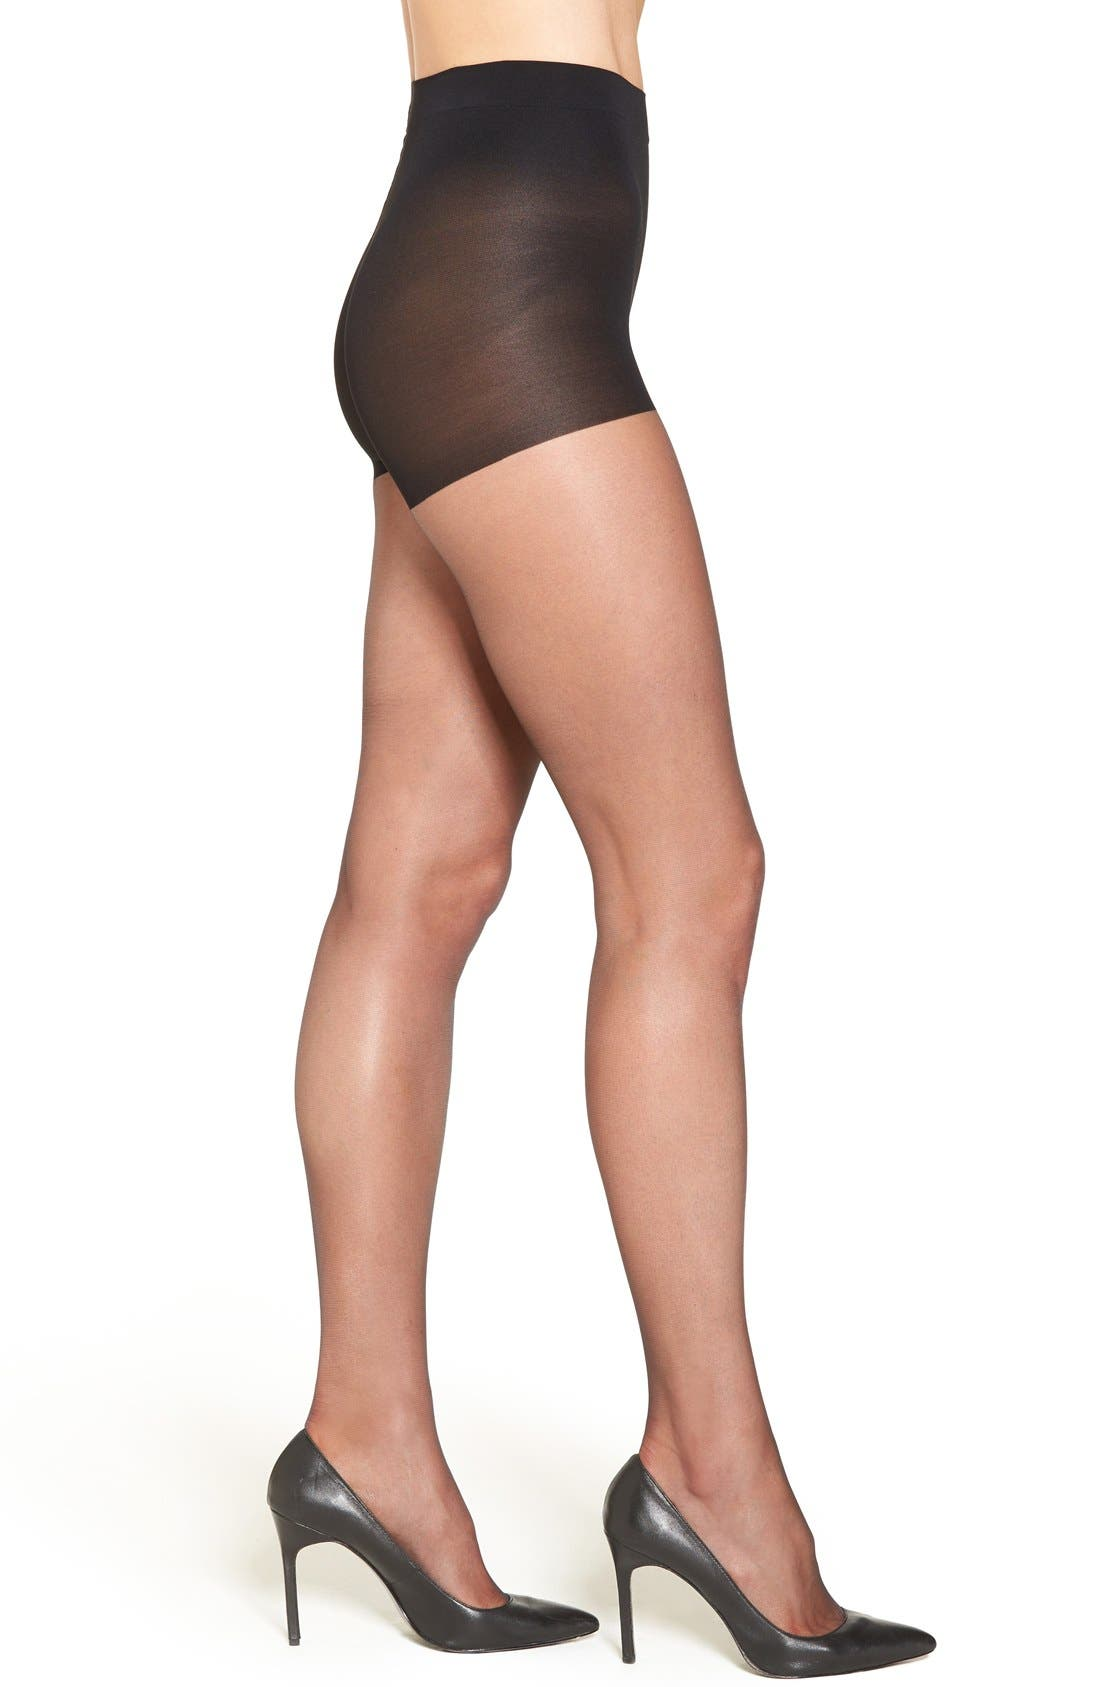 'Ultra Sheer' Control Top Pantyhose,                             Main thumbnail 1, color,                             Black